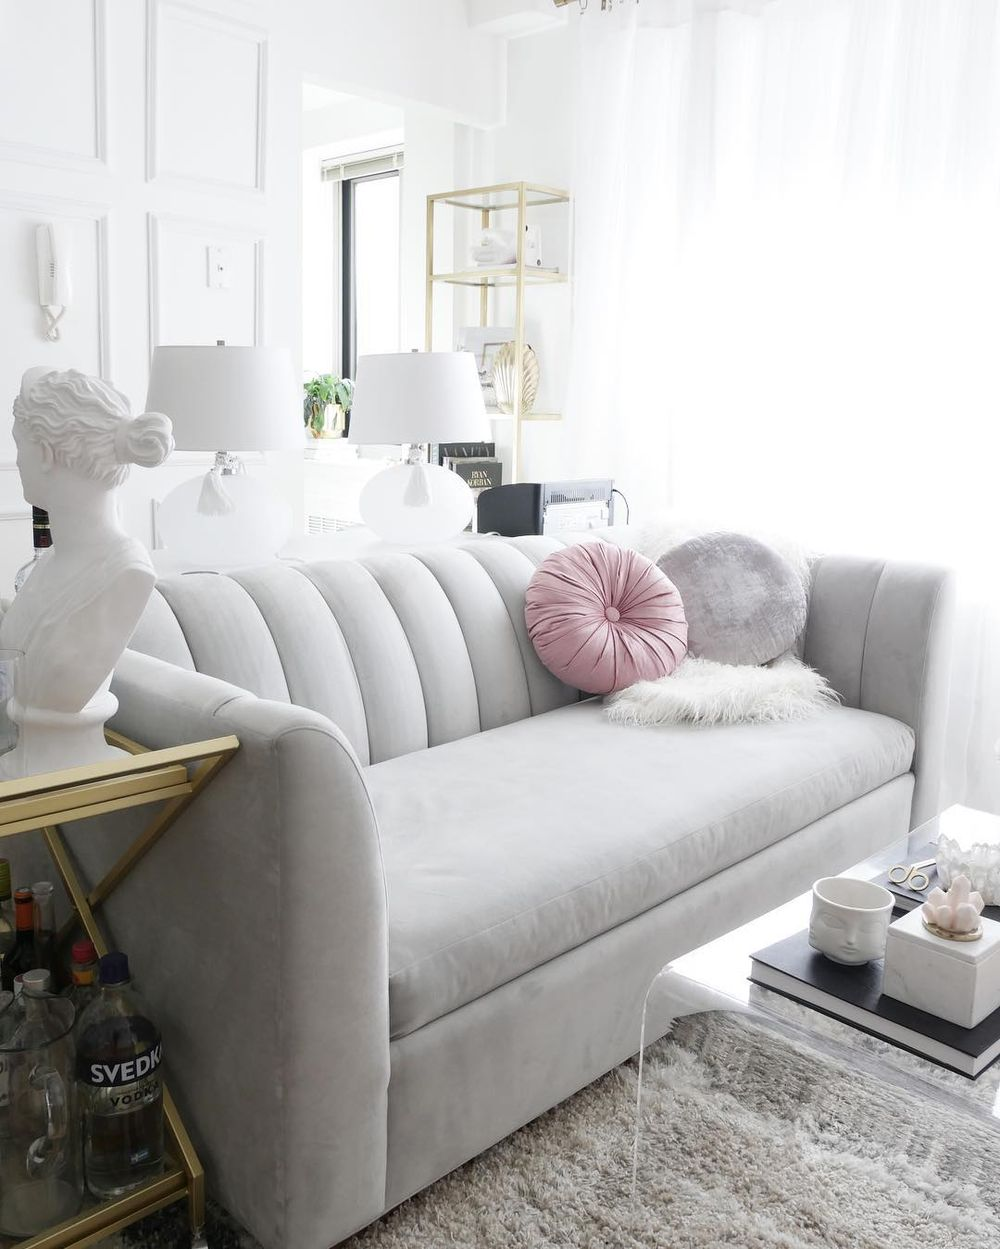 Glam channeled Sofa via @citychicdecor